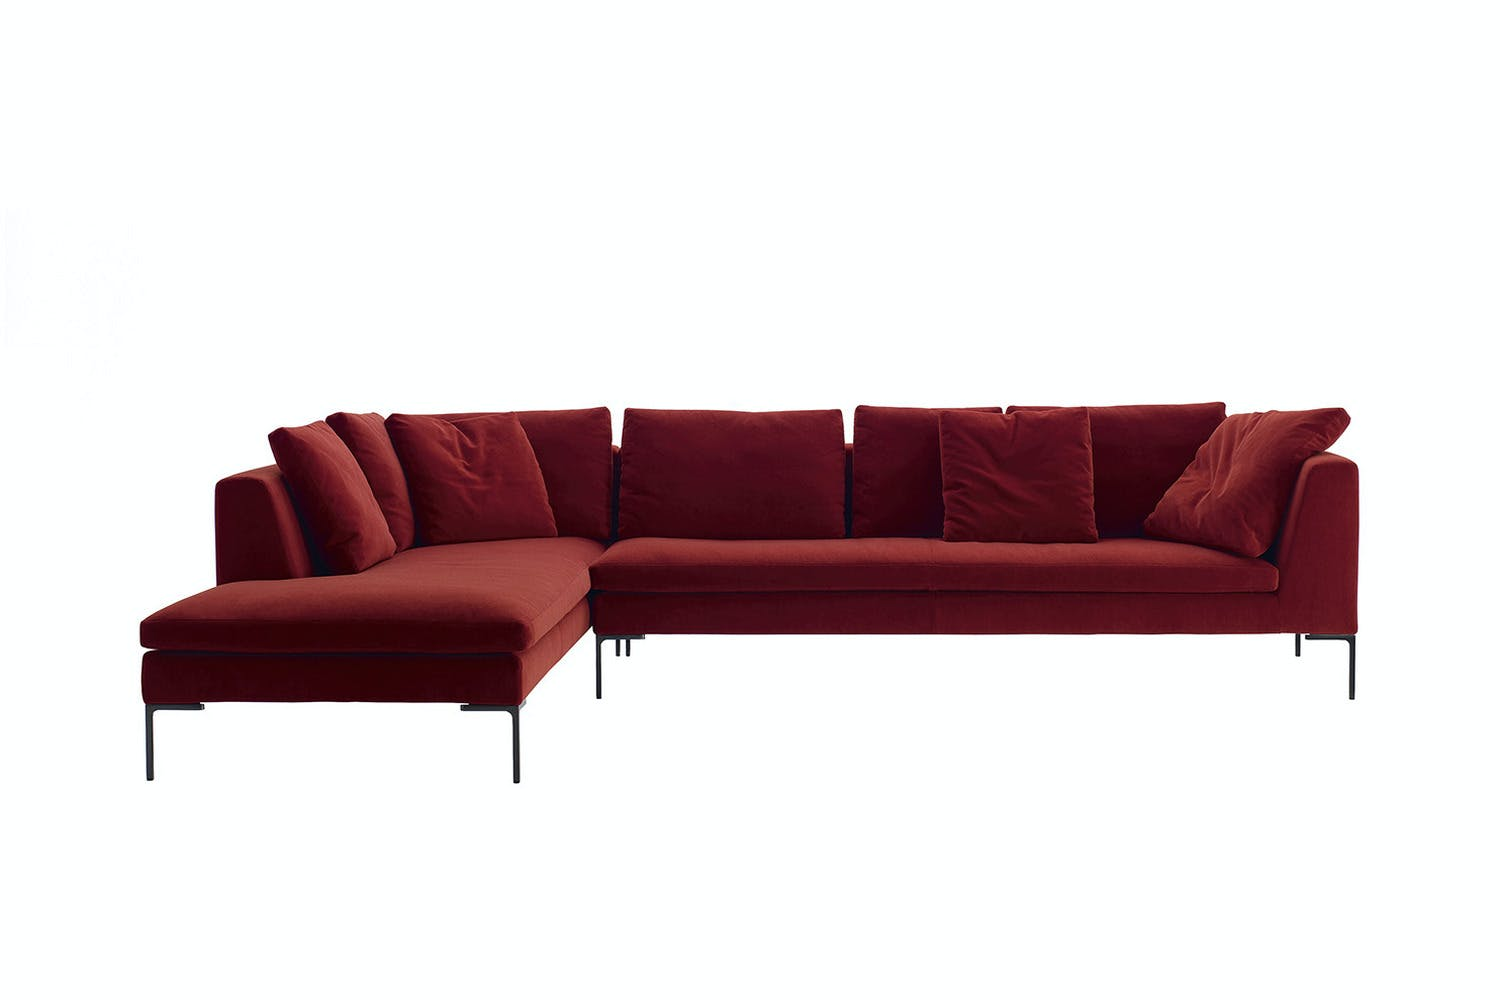 charles sofa with left chaise fabric by antonio citterio. Black Bedroom Furniture Sets. Home Design Ideas